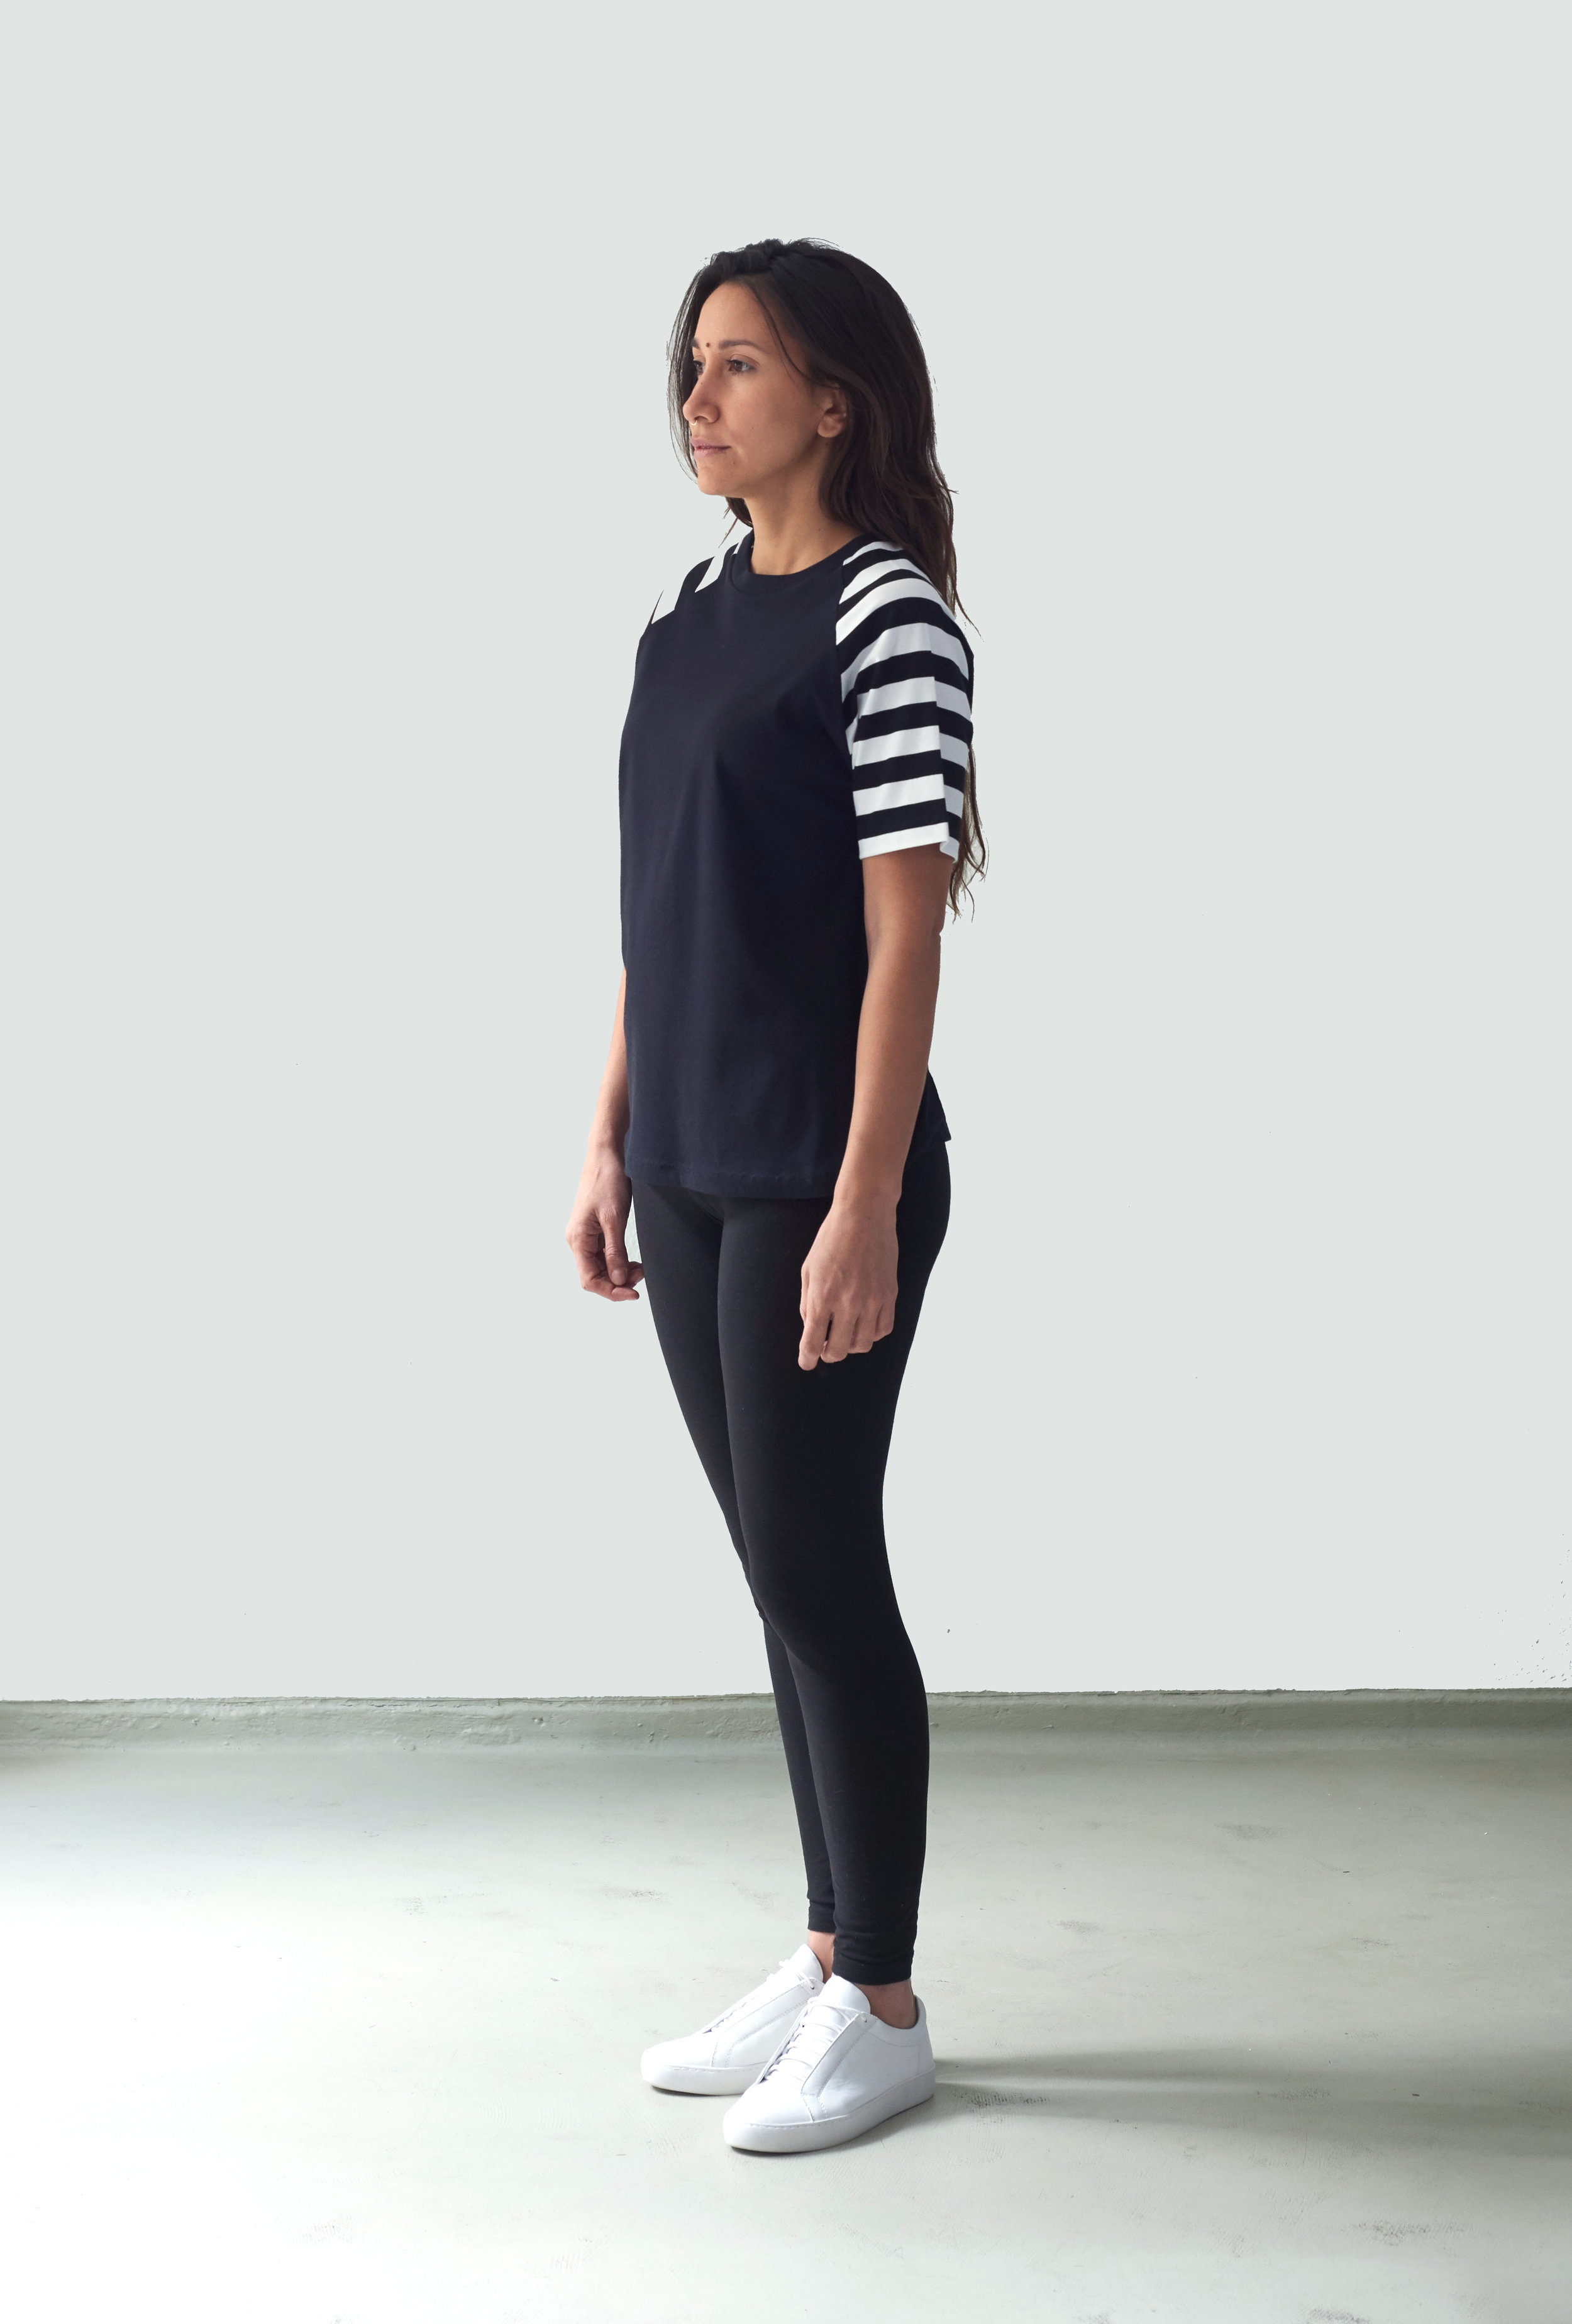 black stripe tee.jpg